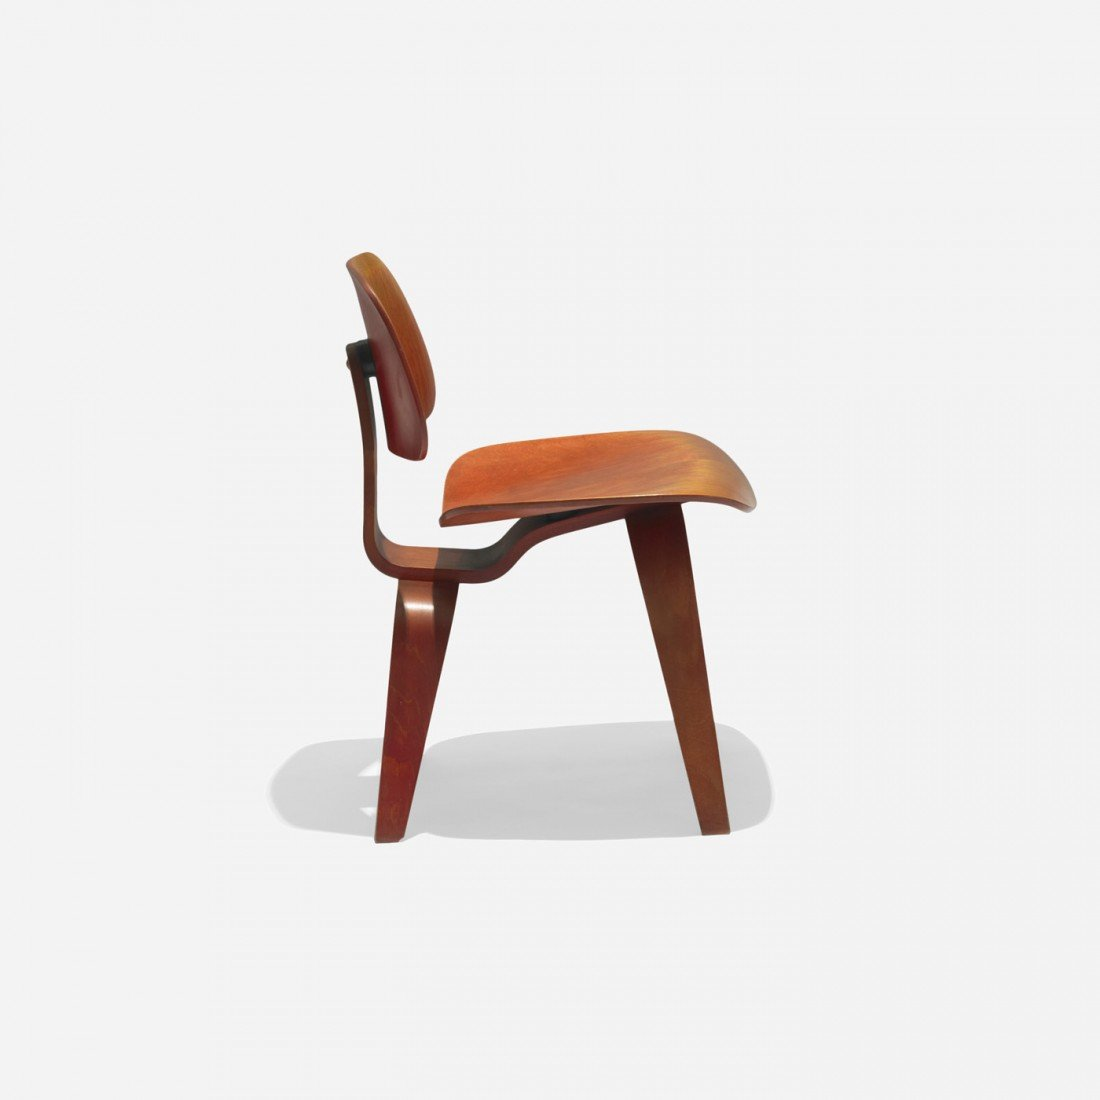 110: Charles and Ray Eames DCW